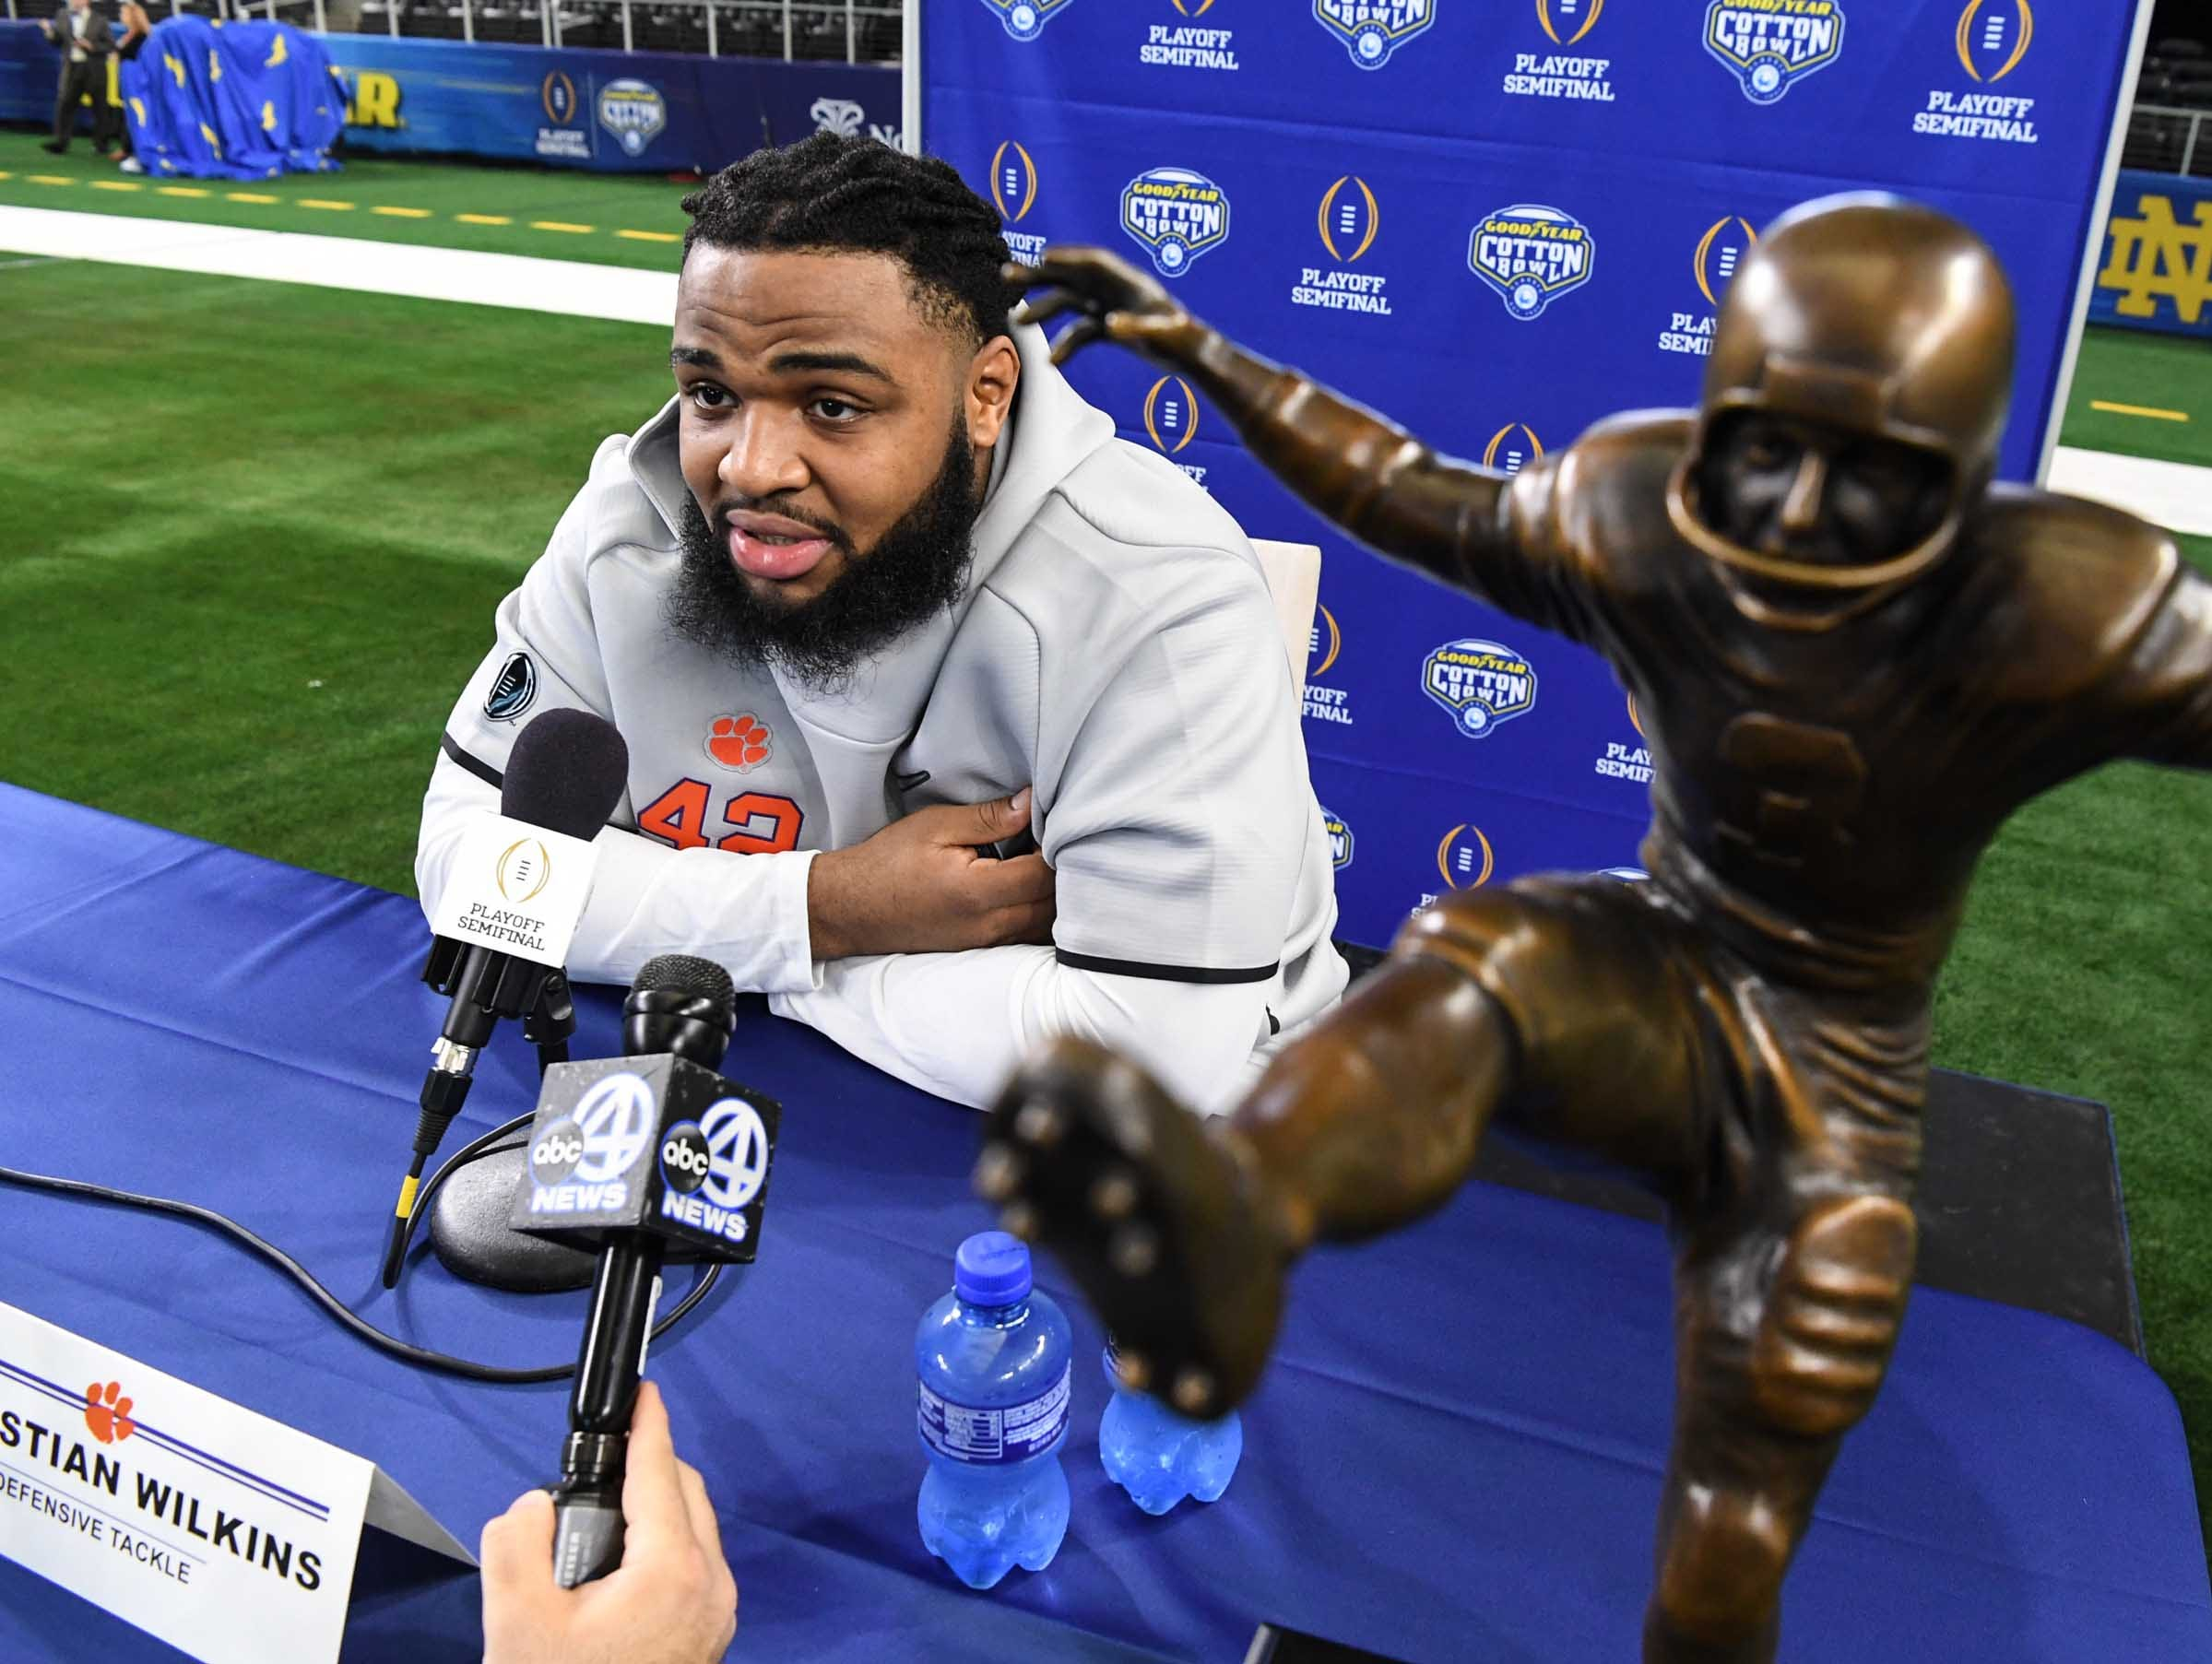 Clemson defensive lineman Christian Wilkins talks near his William V. Campbell Trophy during Media Day for Clemson and Notre Dame at the AT&T Stadium in Dallas December 27, 2018.